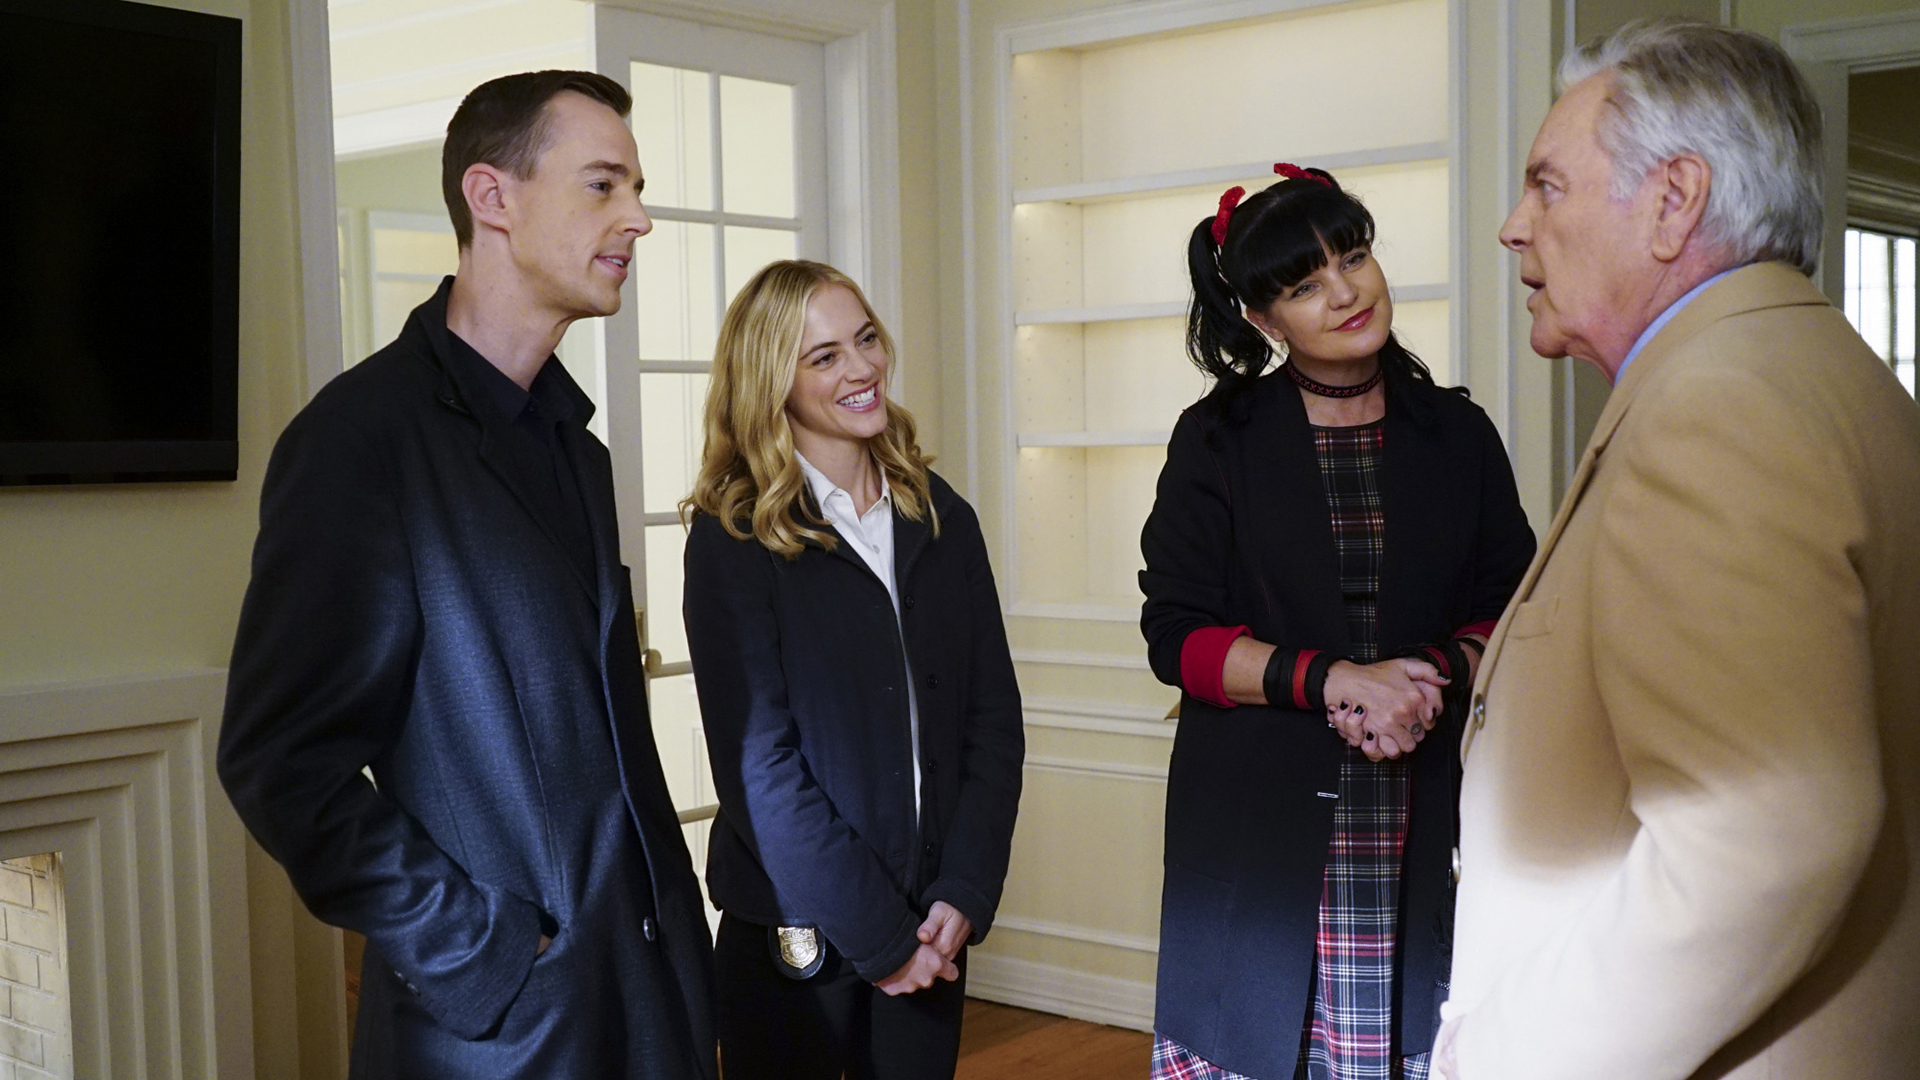 DiNozzo, Sr. offers up Tony's apartment to the NCIS family.